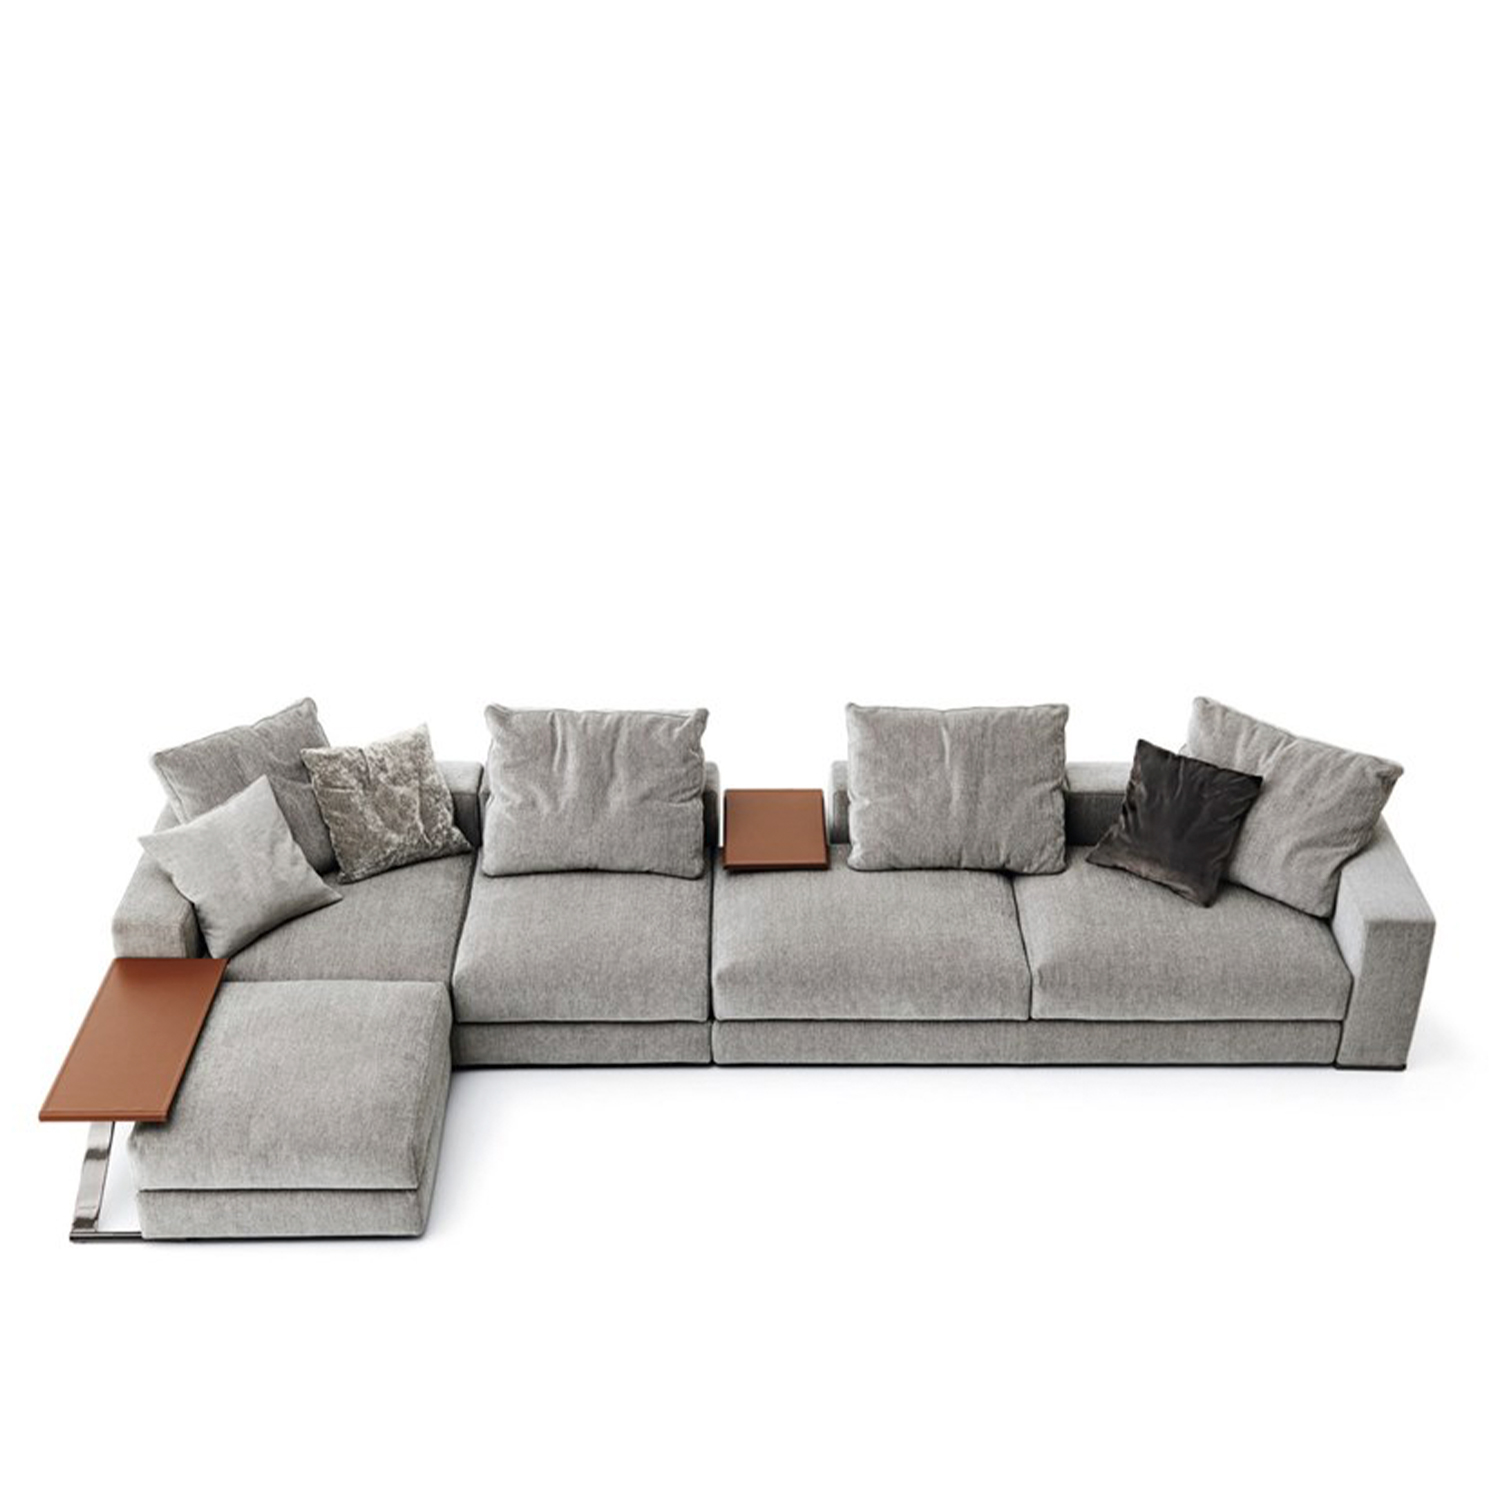 Ananta Class Sectional Sofa - Ananta Class is an informal, modular and versatile range that allows endless combinations of the independent backrests and bases available in 80, 120, 160, 200 and 240 cm lengths.‎ The collection, whose name evokes the concept of infinity, is based on the idea of simple construction: free from constraints of the armrests and backrests, the seating can be arranged to suit individual needs.‎ It is completed with a side table available in two sizes.‎ The black chrome structure holds up a table top available in walnut veneer or regenerated leather.‎ The line offers a new, democratic and modern way of relating objects to people's lifestyles.‎ Fully removable covers.‎